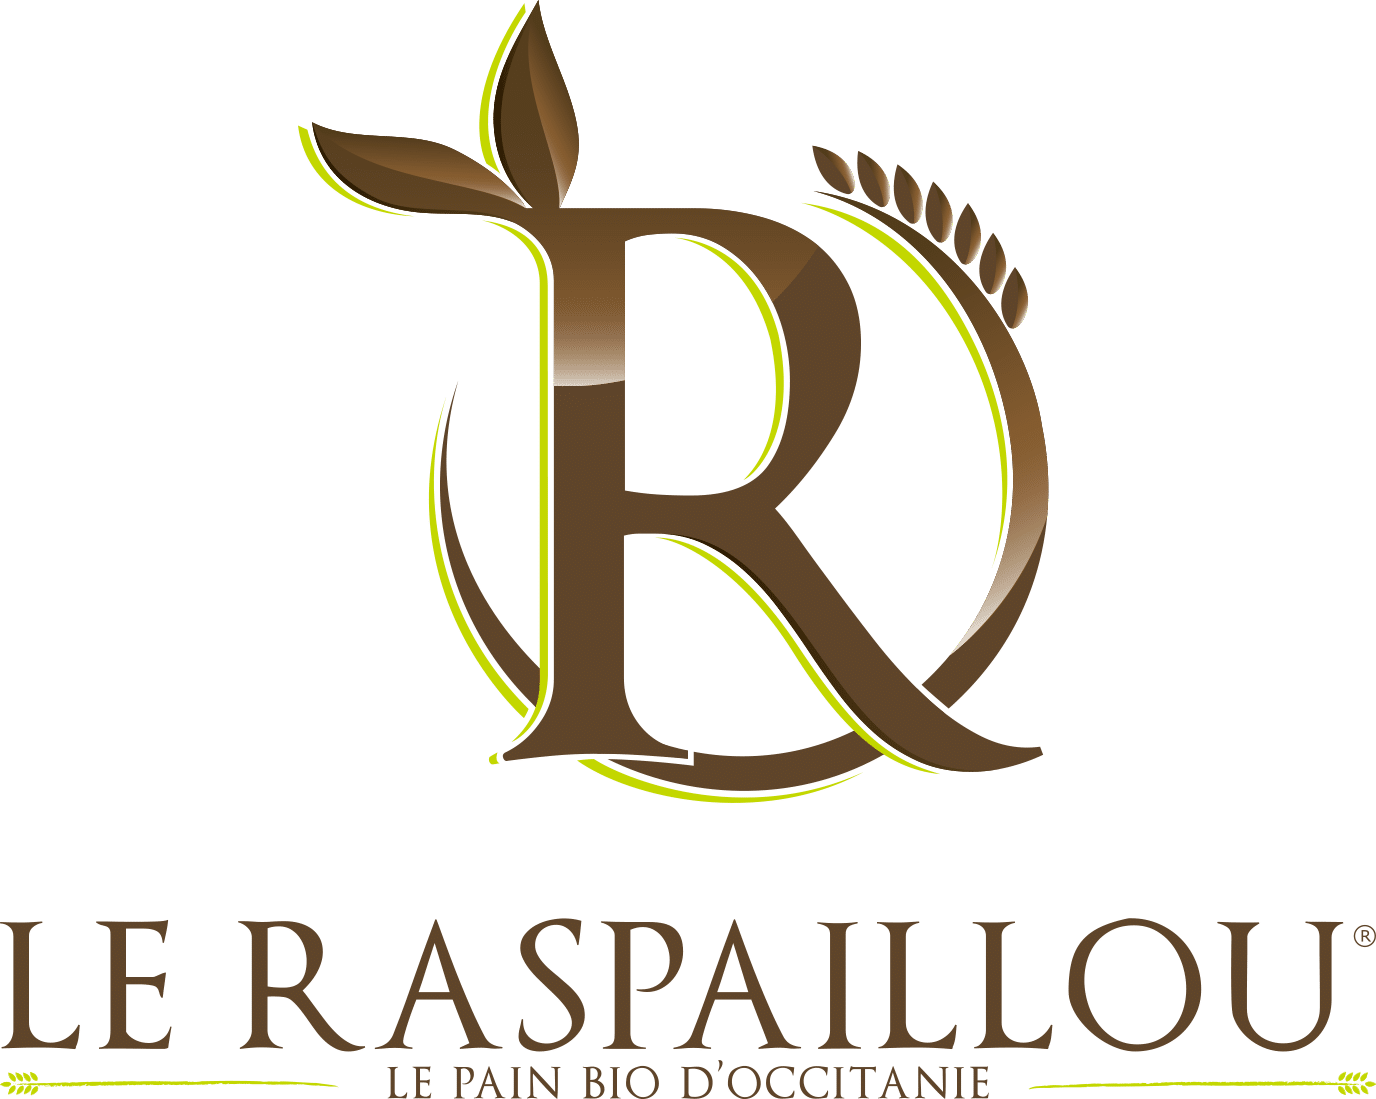 Association Raspaillou 1